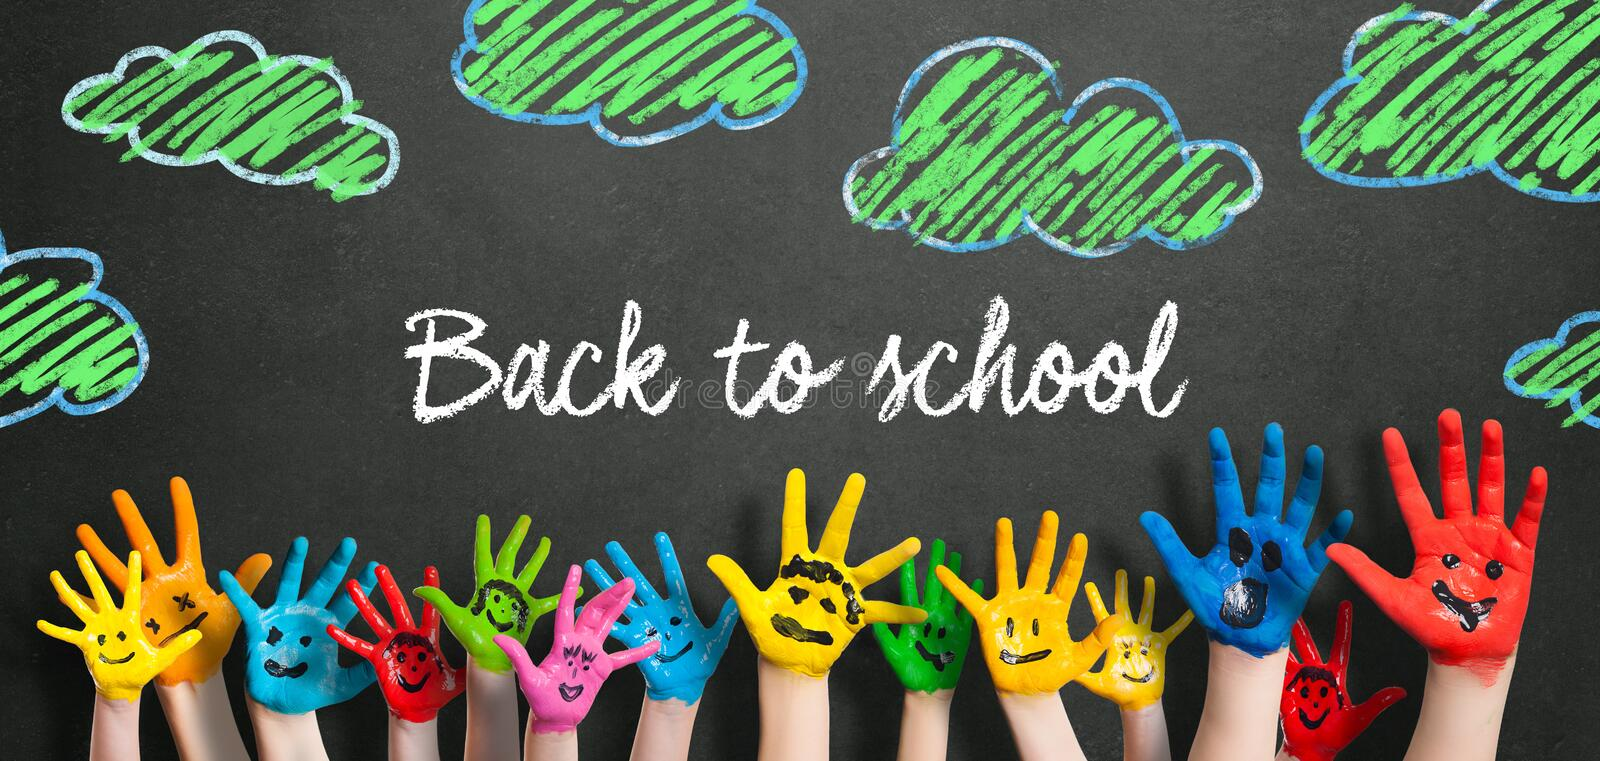 Many painted kids hands with smileys and the message `Back to school` royalty free stock photography